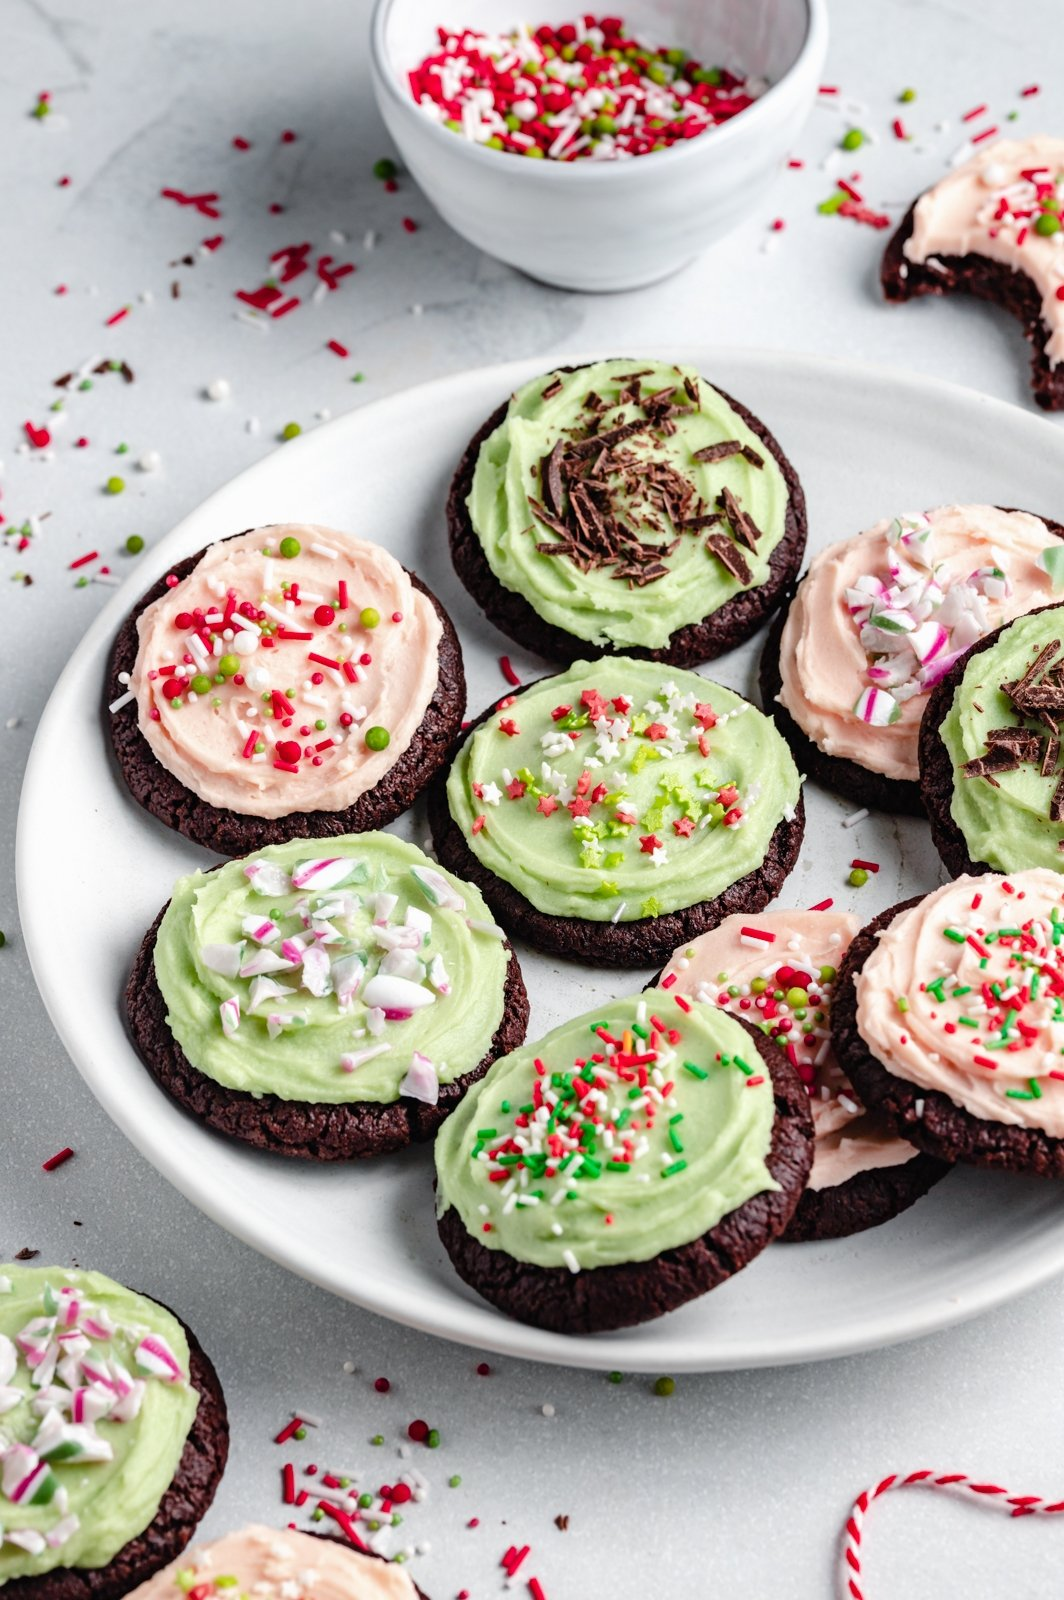 mint chocolate cookies with mint frosting on a plate